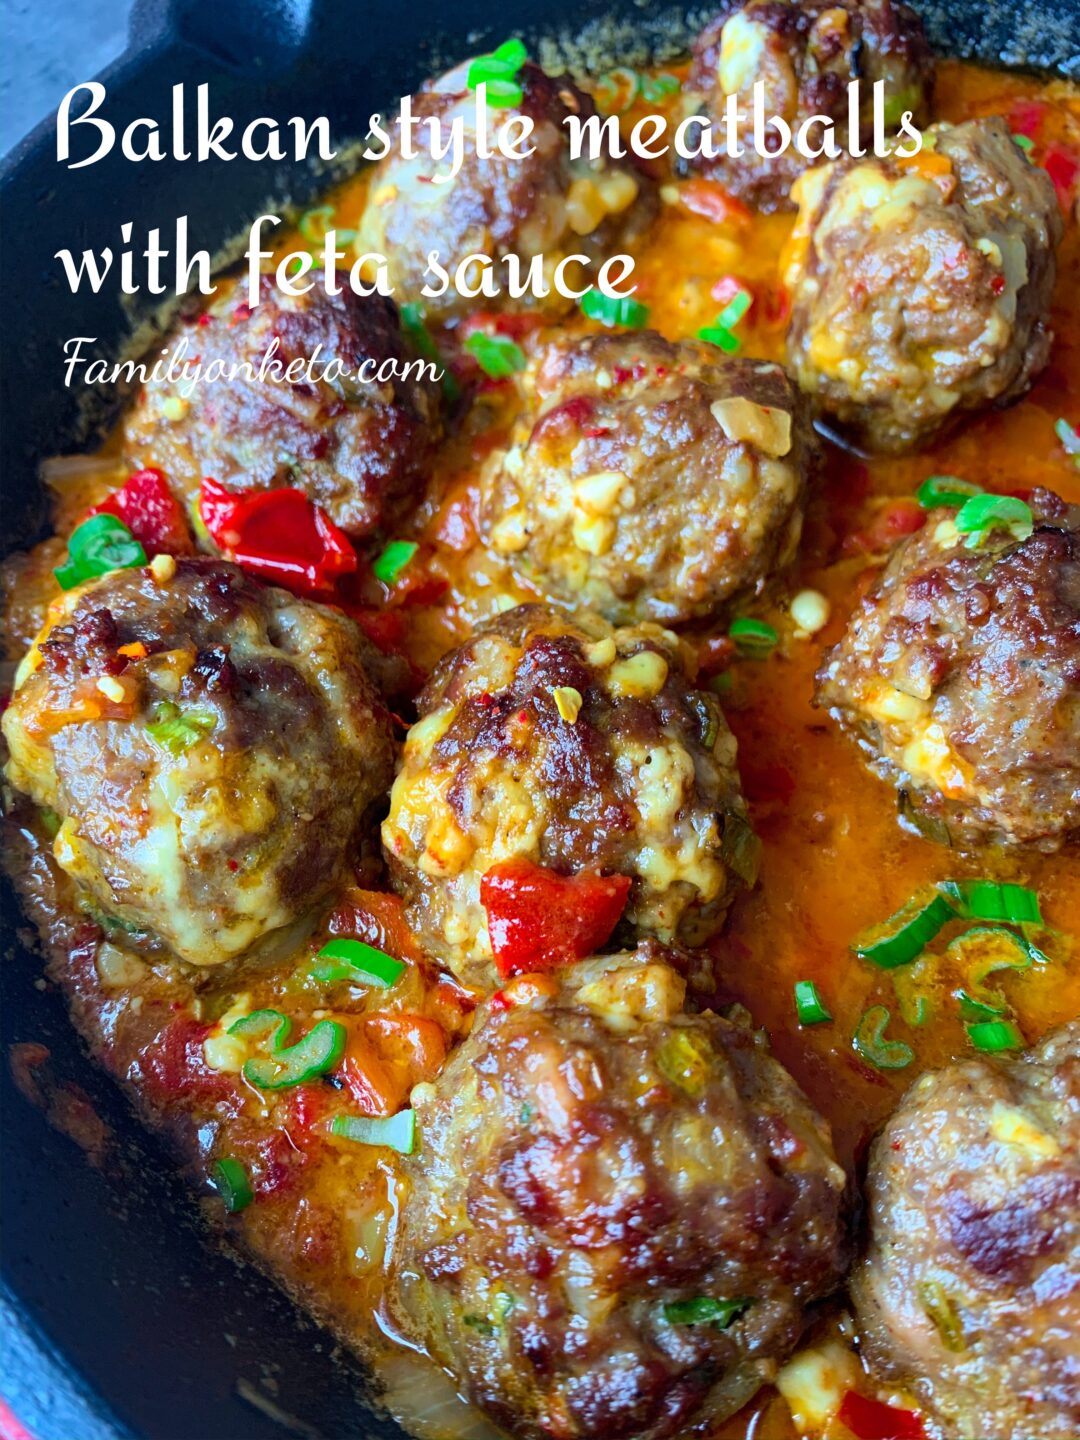 Picture of Balkan style meatballs with feta cheese sauce. Delicious keto meatballs recipe.